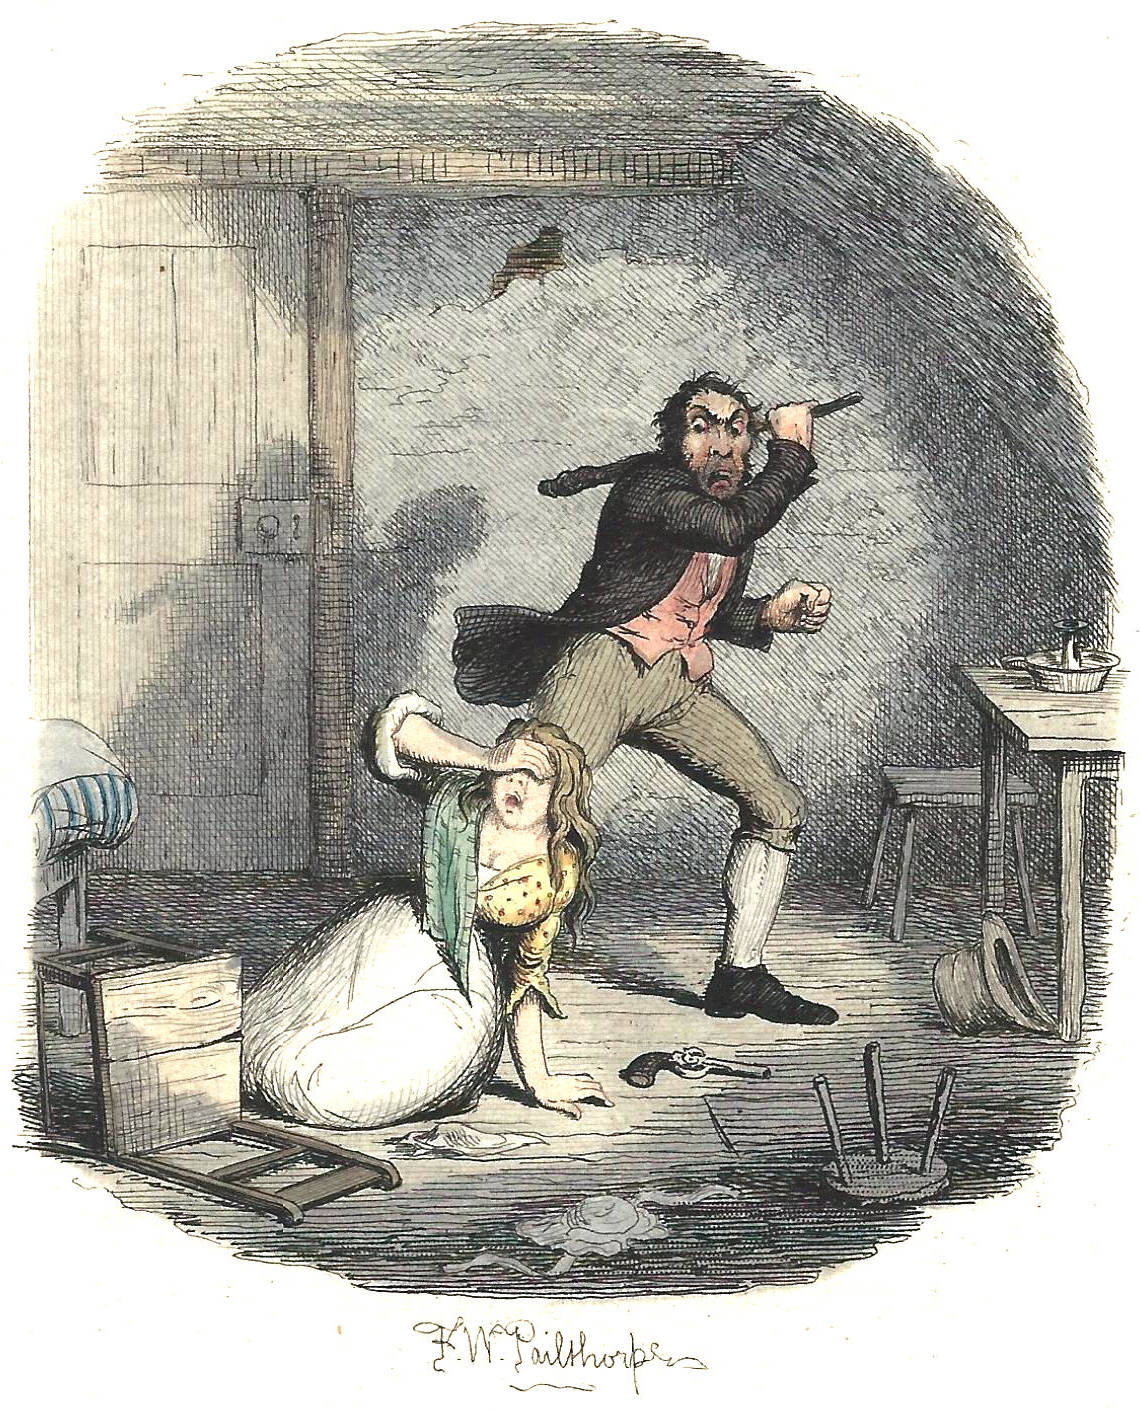 nancy in dickens s oliver twist mirabile dictu illustration of nancy and sikes murder oliver dickens 38